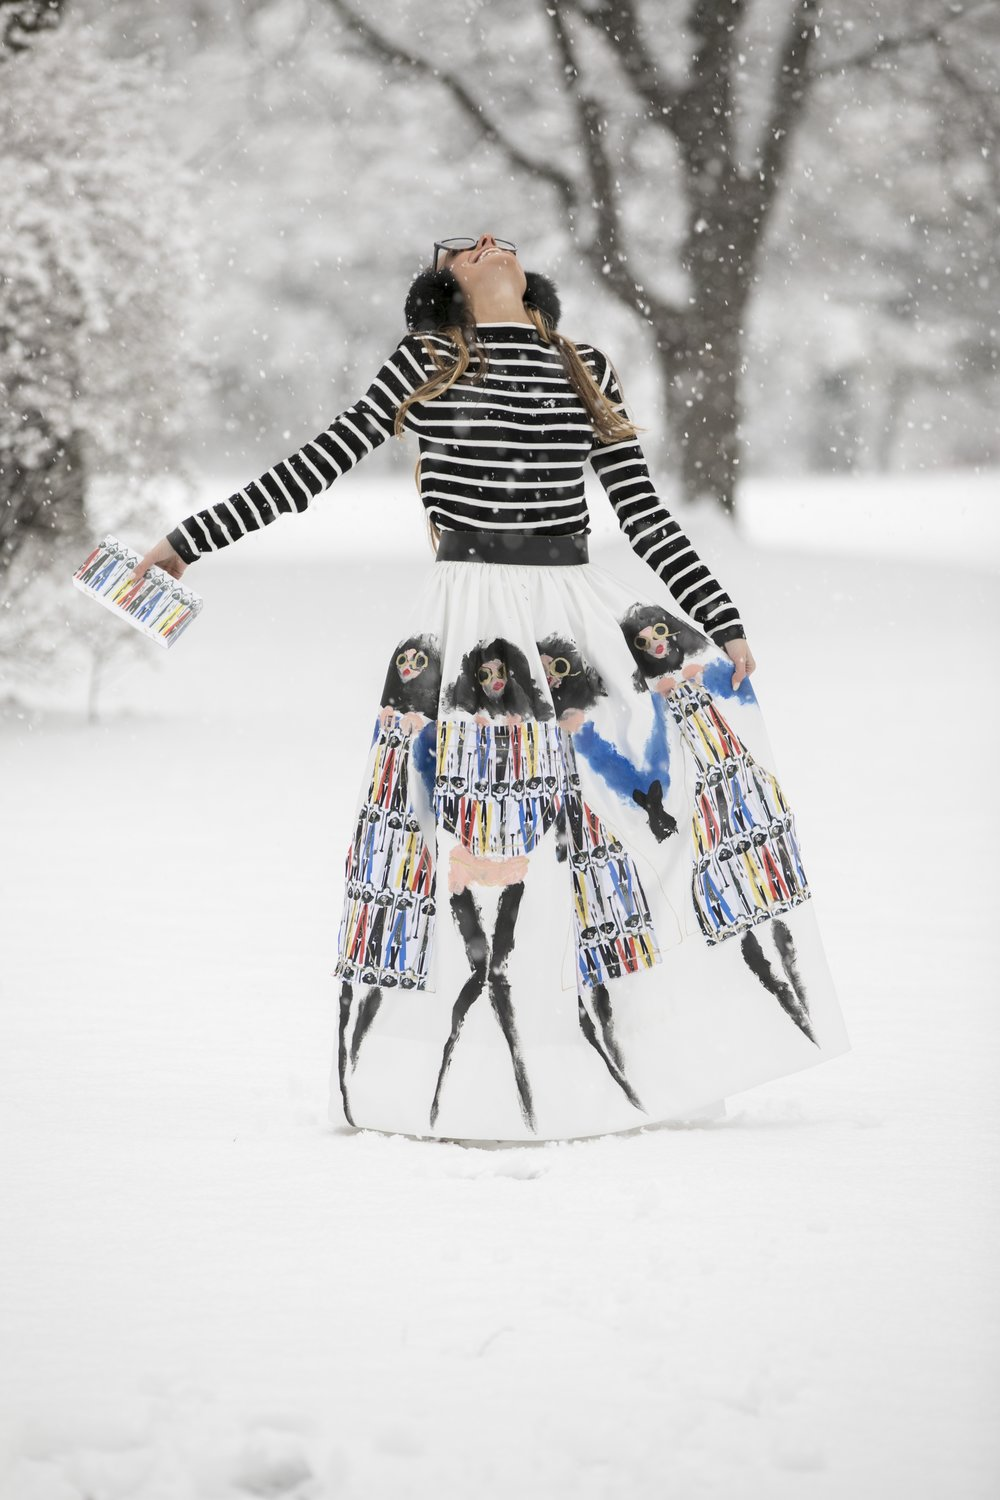 catching snowflakes in alice and olivia